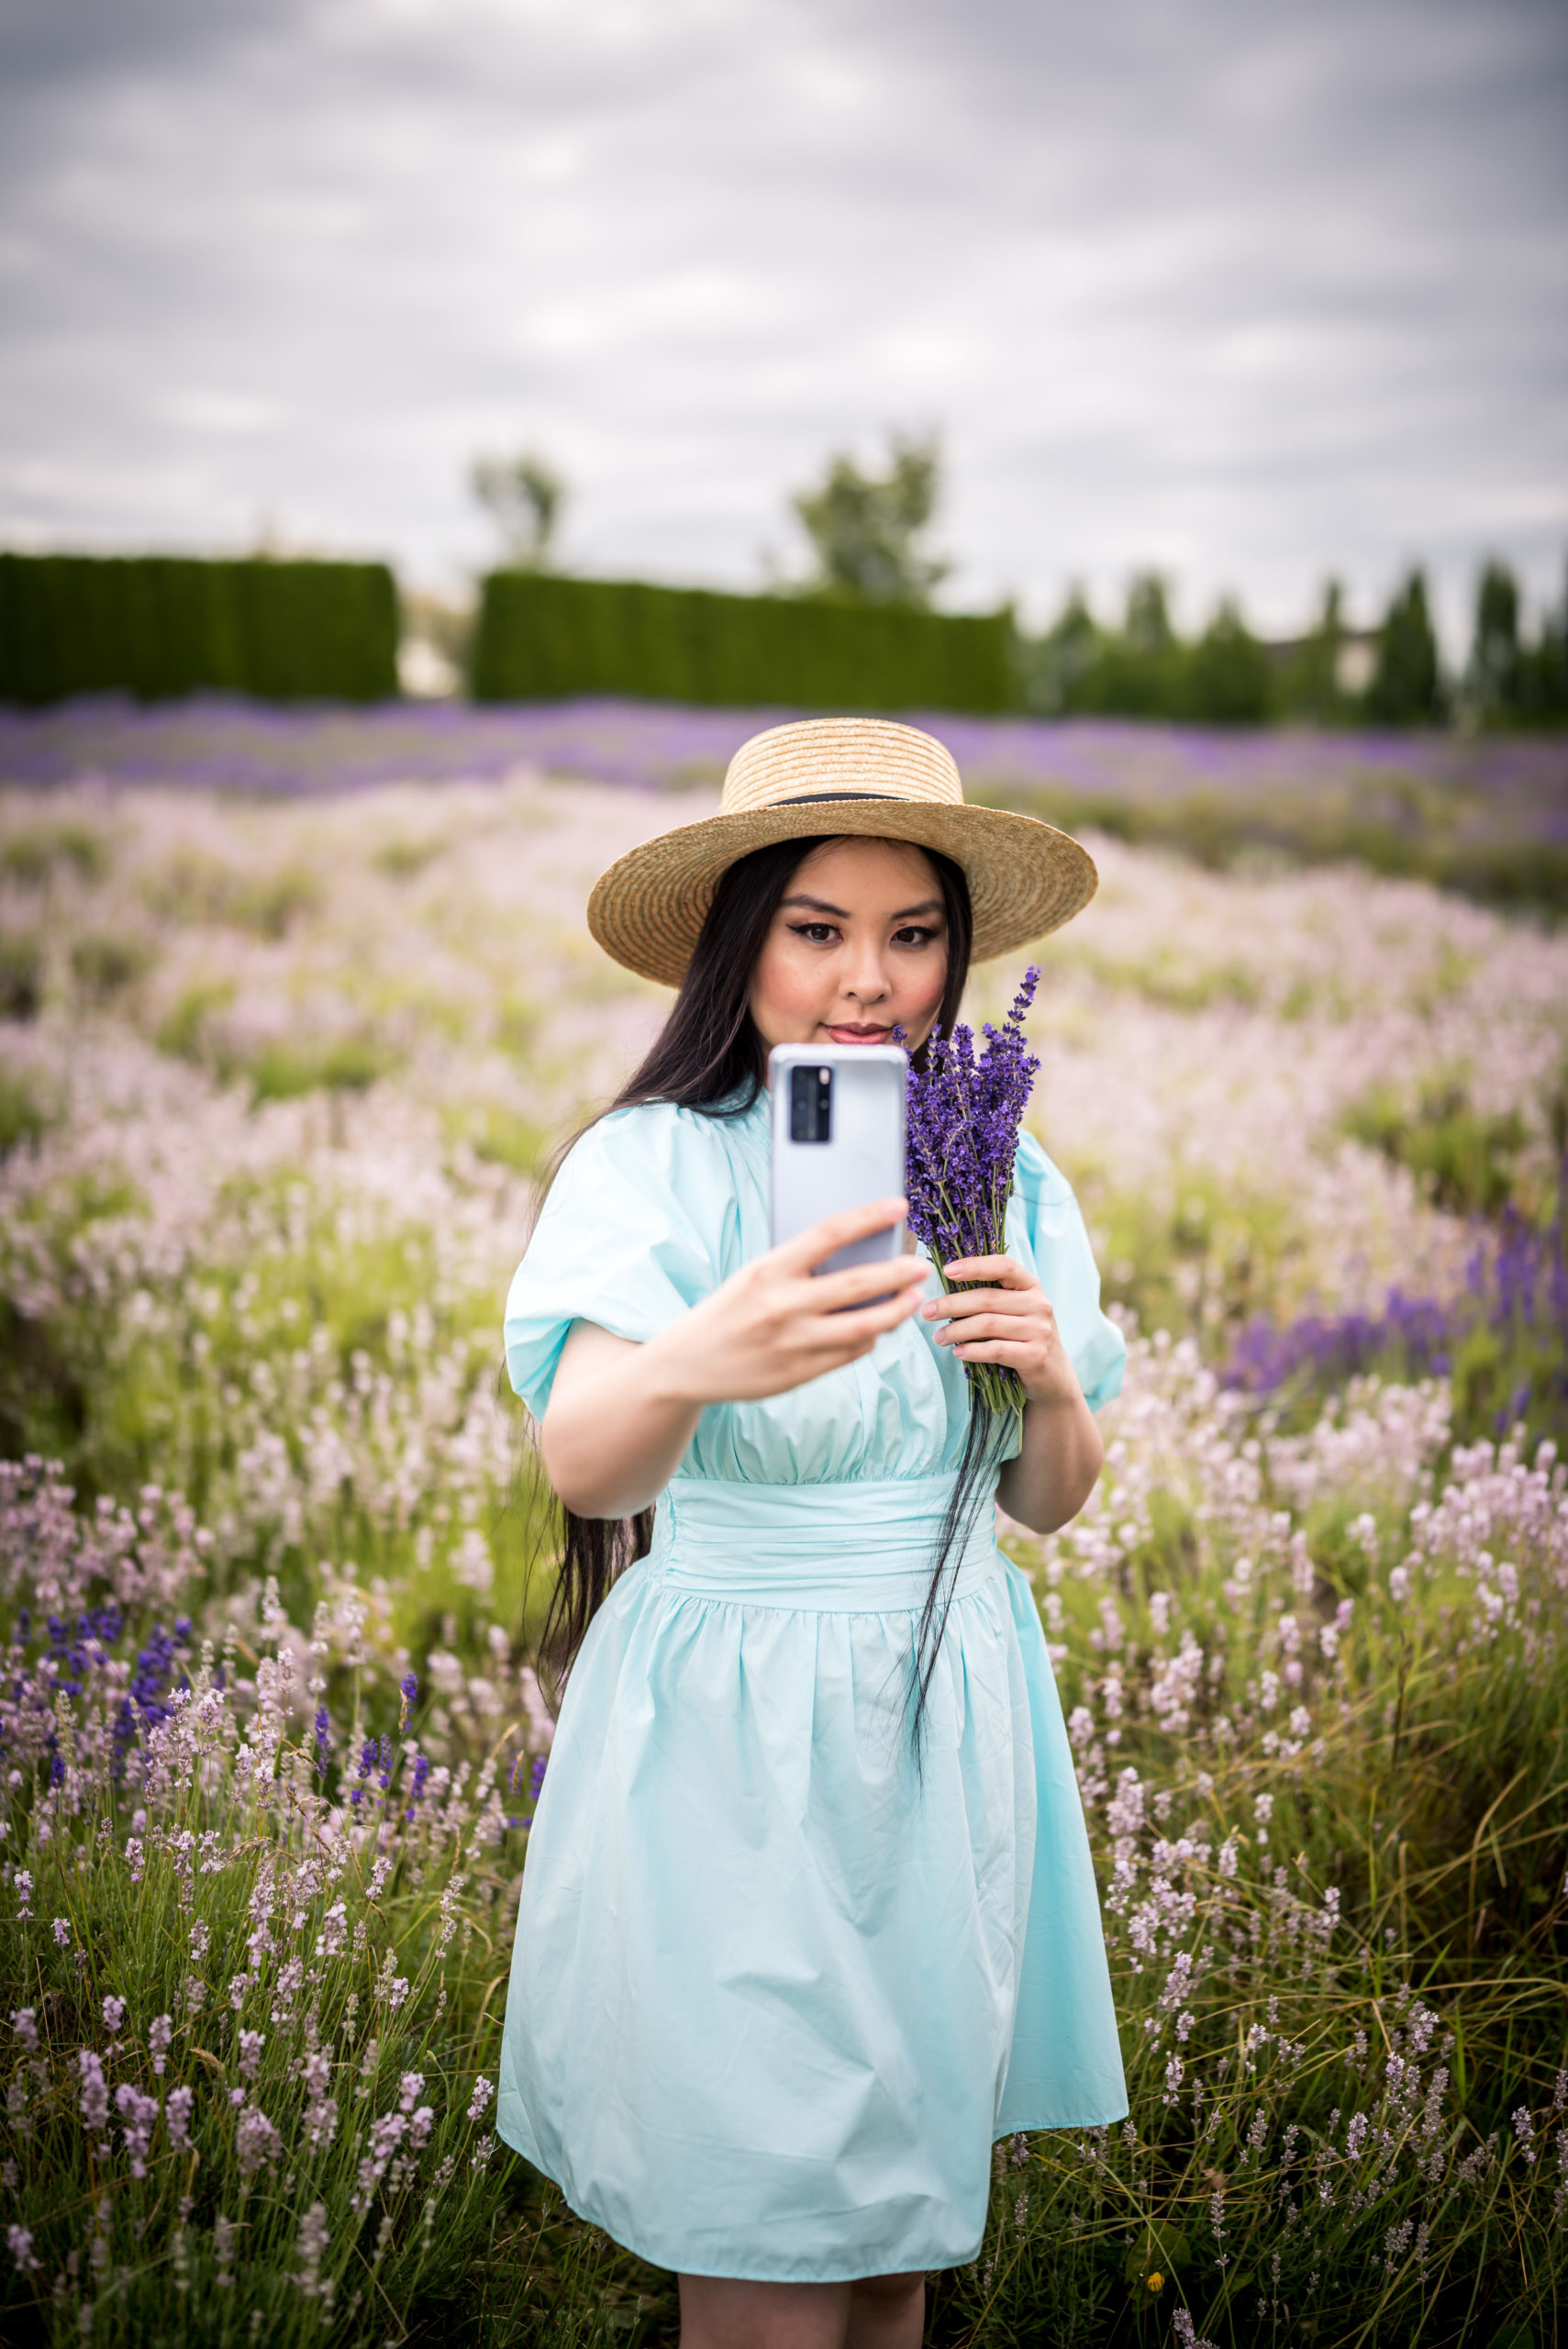 Glamouraspirit at Full Bloom Lavender farm in langley with Huawei P40 Pro Smartphone